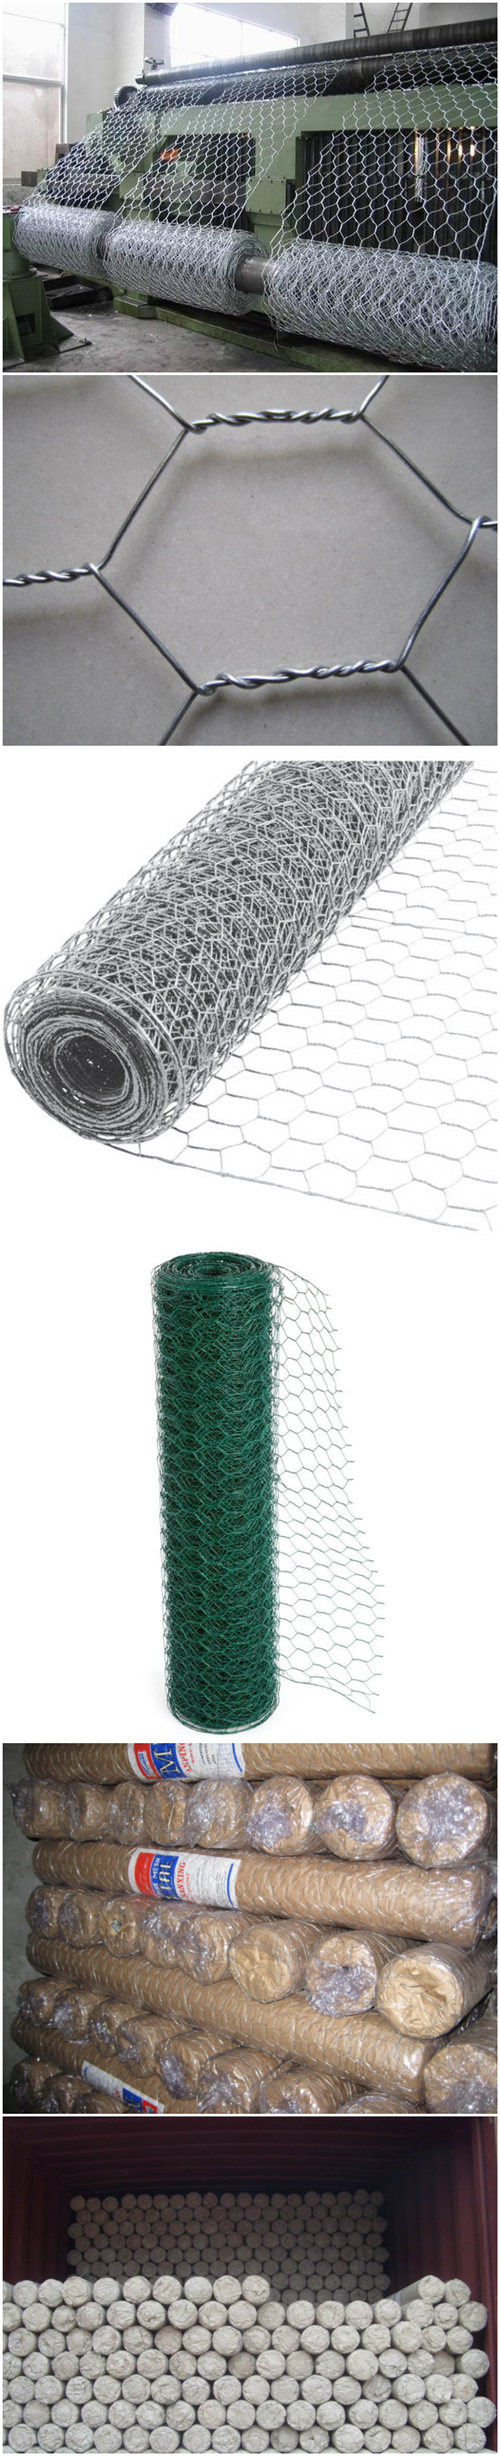 China 2016 Hot Sale Hexagonal Wire Netting Low Cost